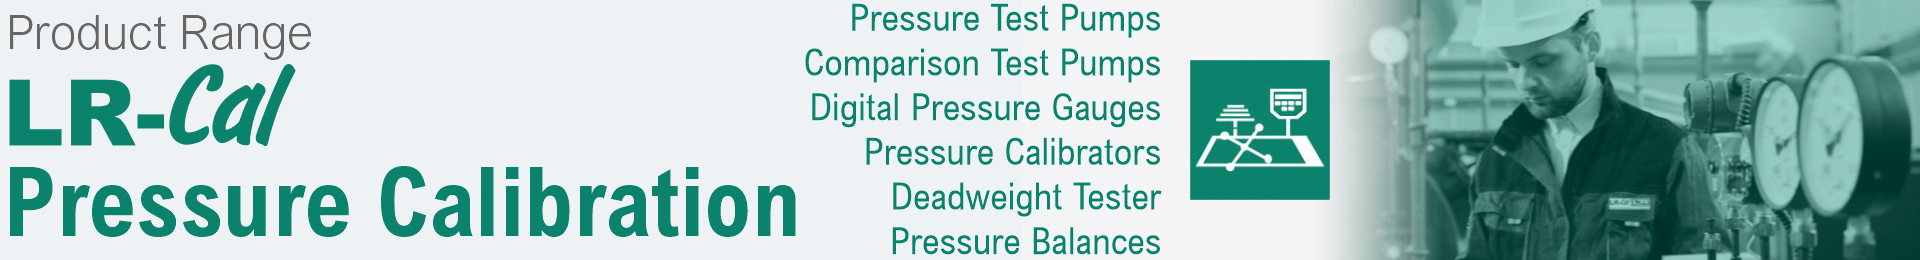 Product range Pressure Calibration: Pressure Test Pumps, Digital Pressure Gauges, Pressure Calibrator, Process Calibrator, Deadweight Tester, Pressure Balance